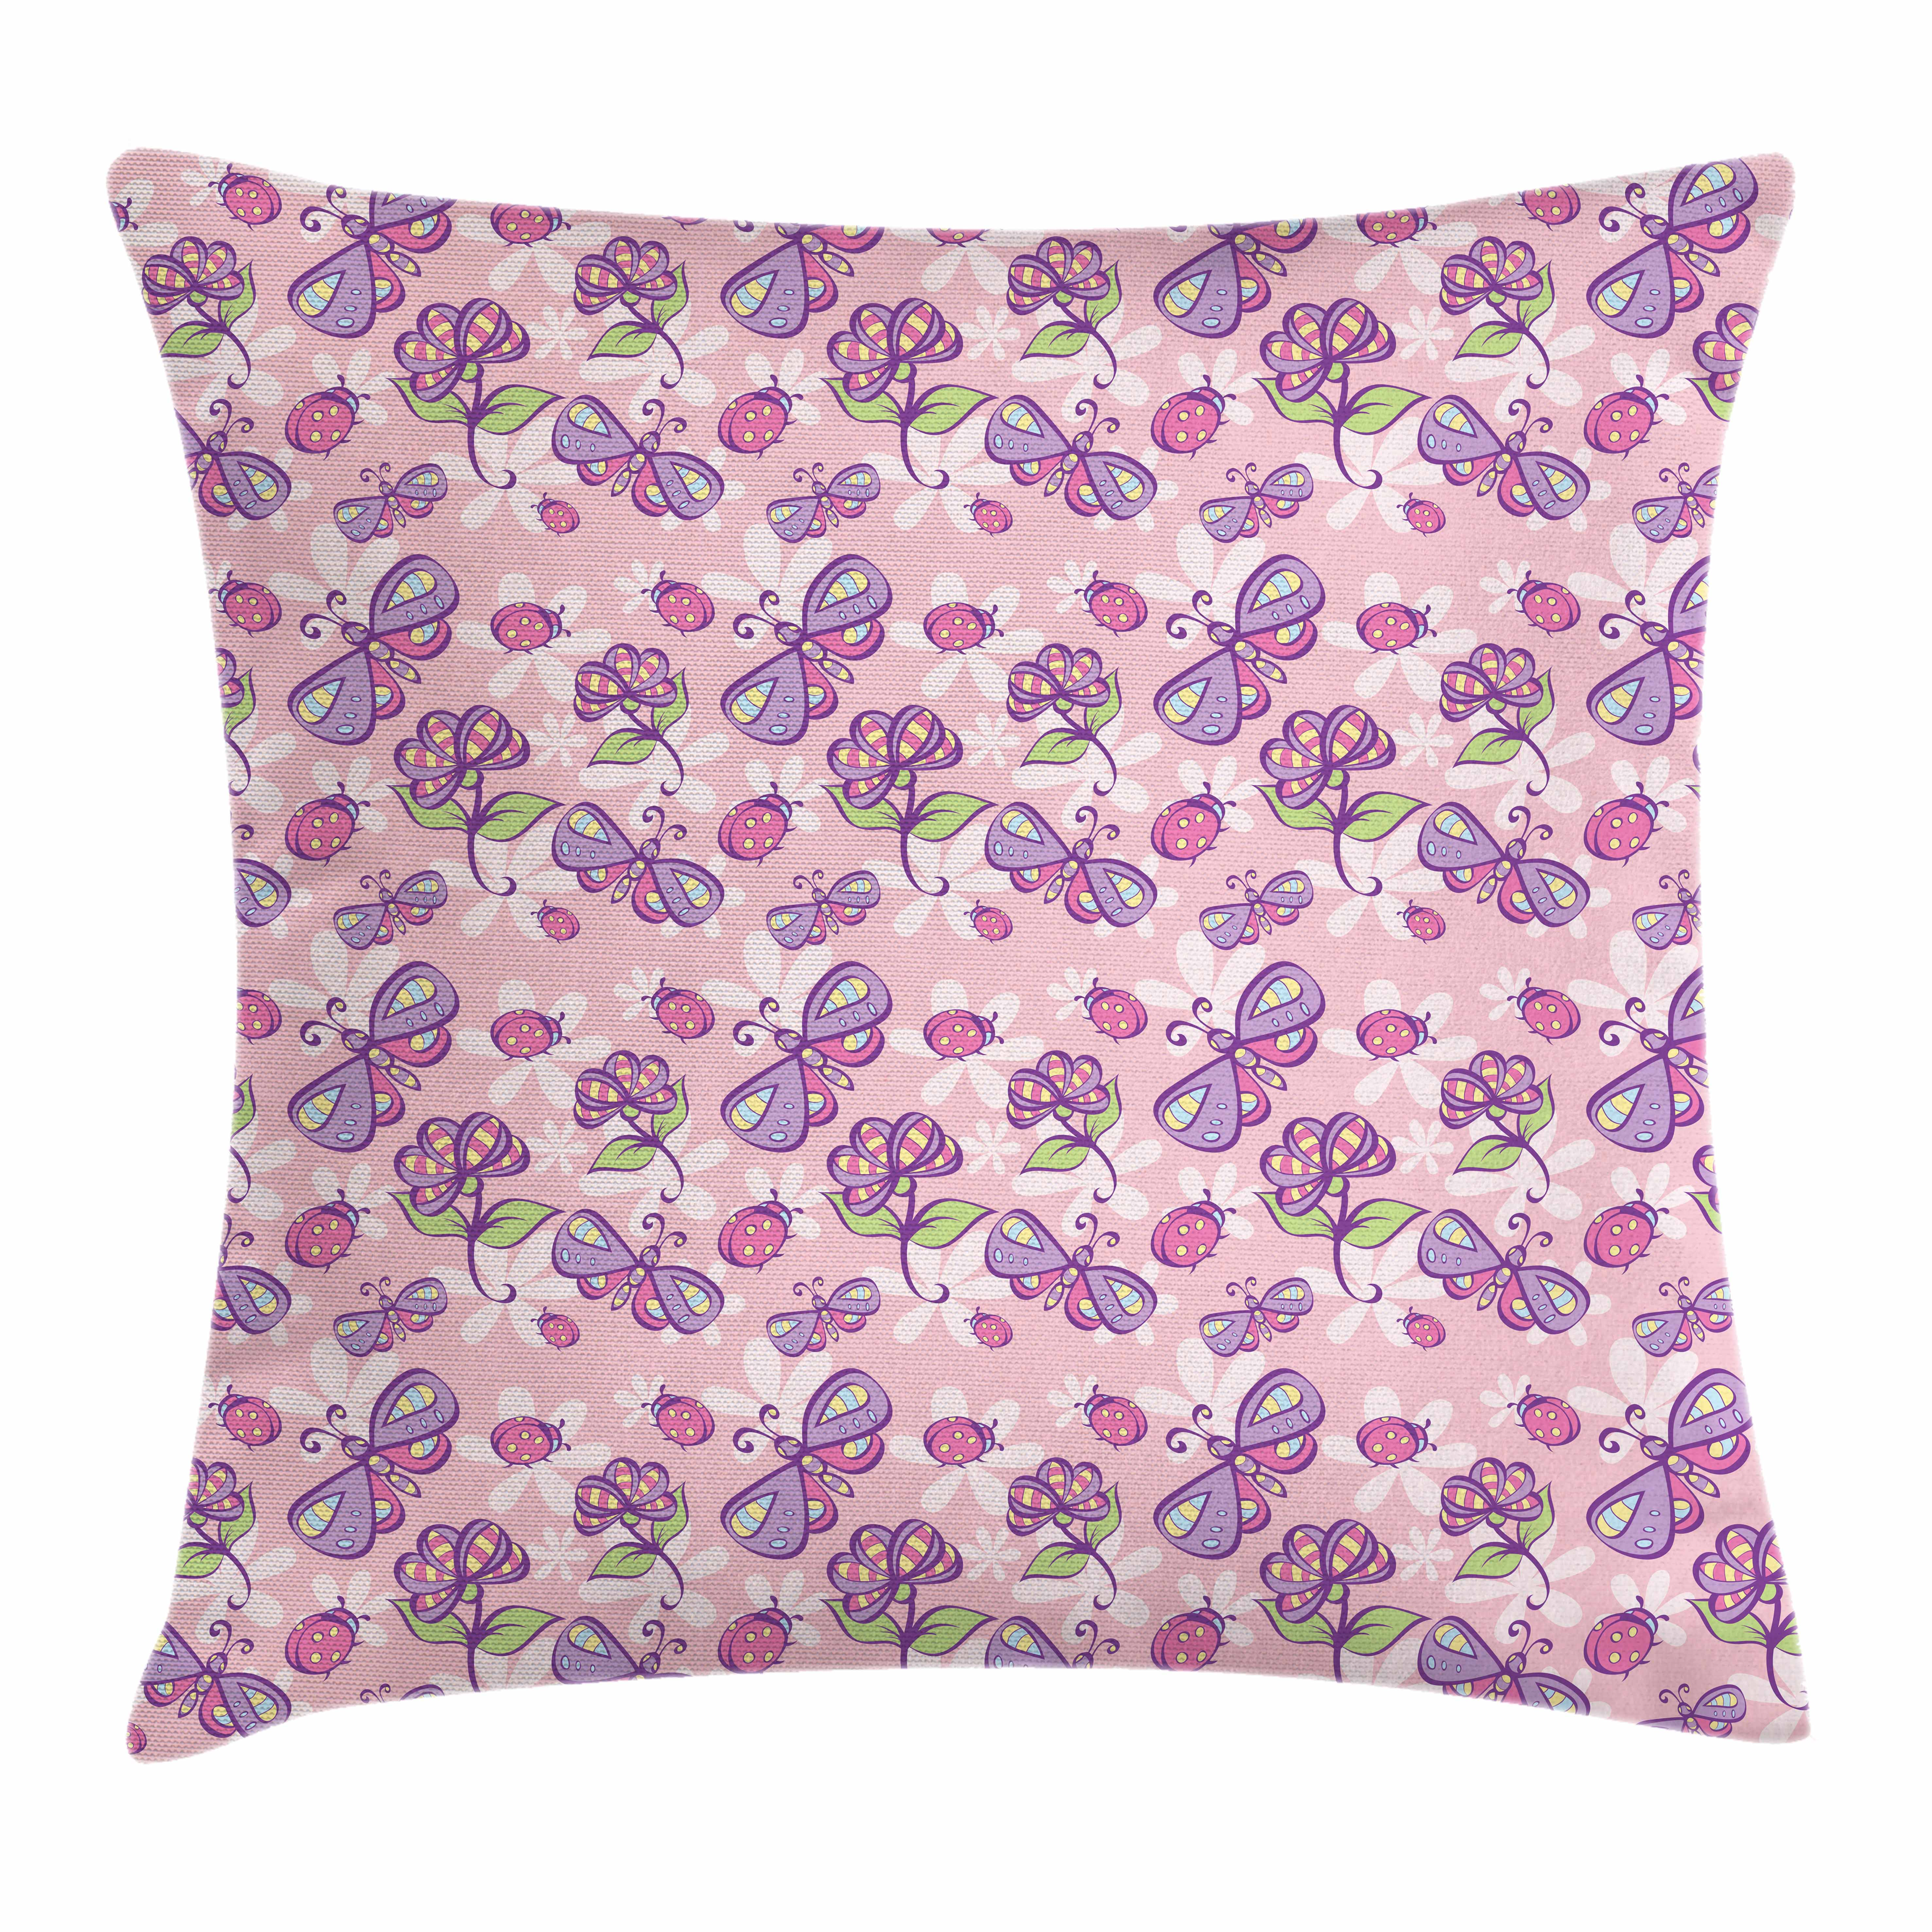 Floral Throw Pillow Cushion Cover, Butterflies Flowers Cartoon Stylized Kids Girls Baby Playroom Nursery Theme, Decorative Square Accent Pillow Case, 16 X 16 Inches, Pale Pink Lavander, by Ambesonne